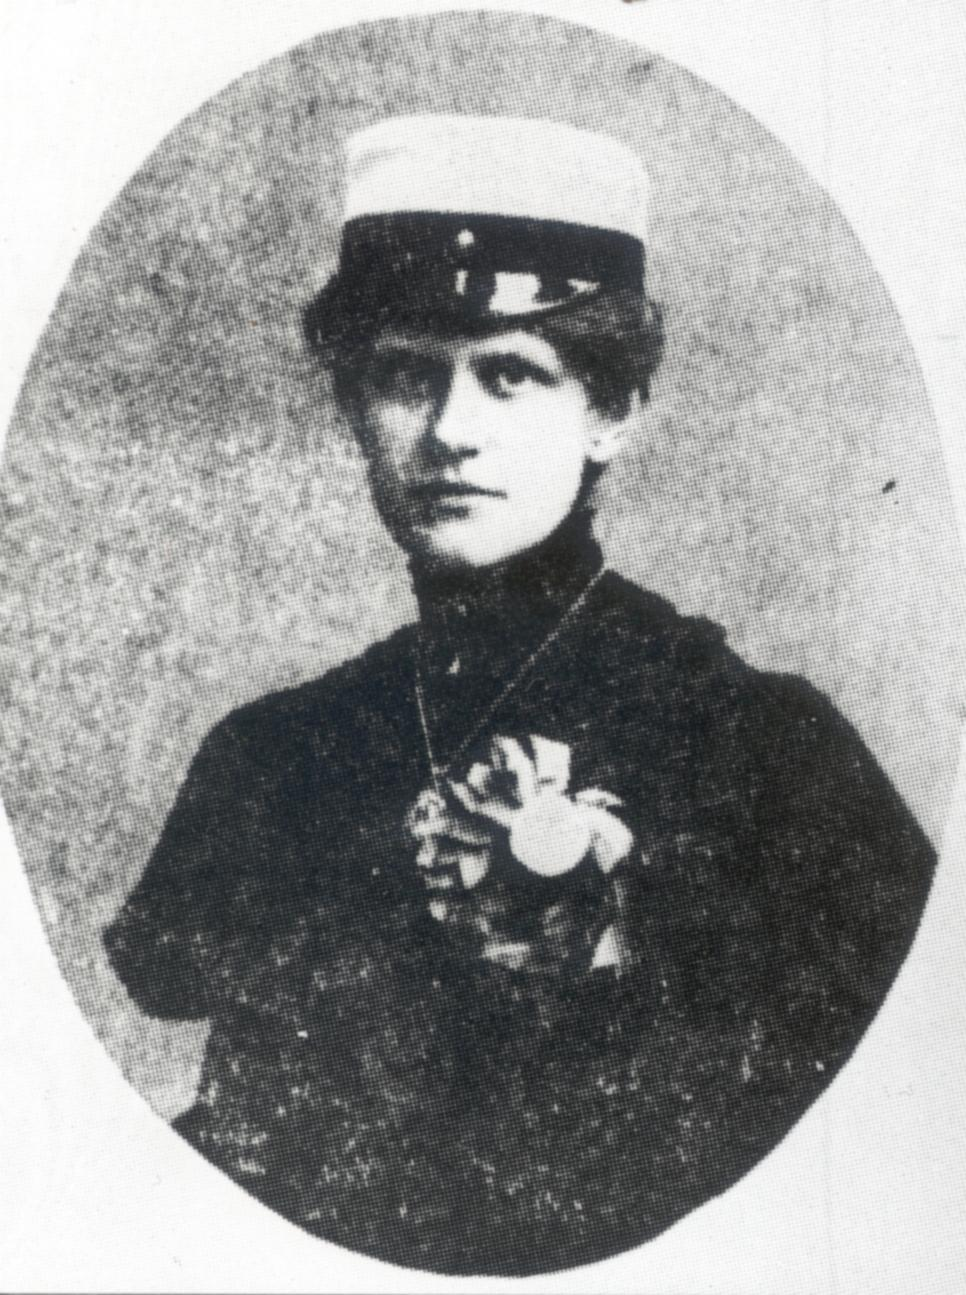 Betty Pettersson (1838-1885). Reproduktion: KvinnSam, Göteborgs universitetsbibliotek